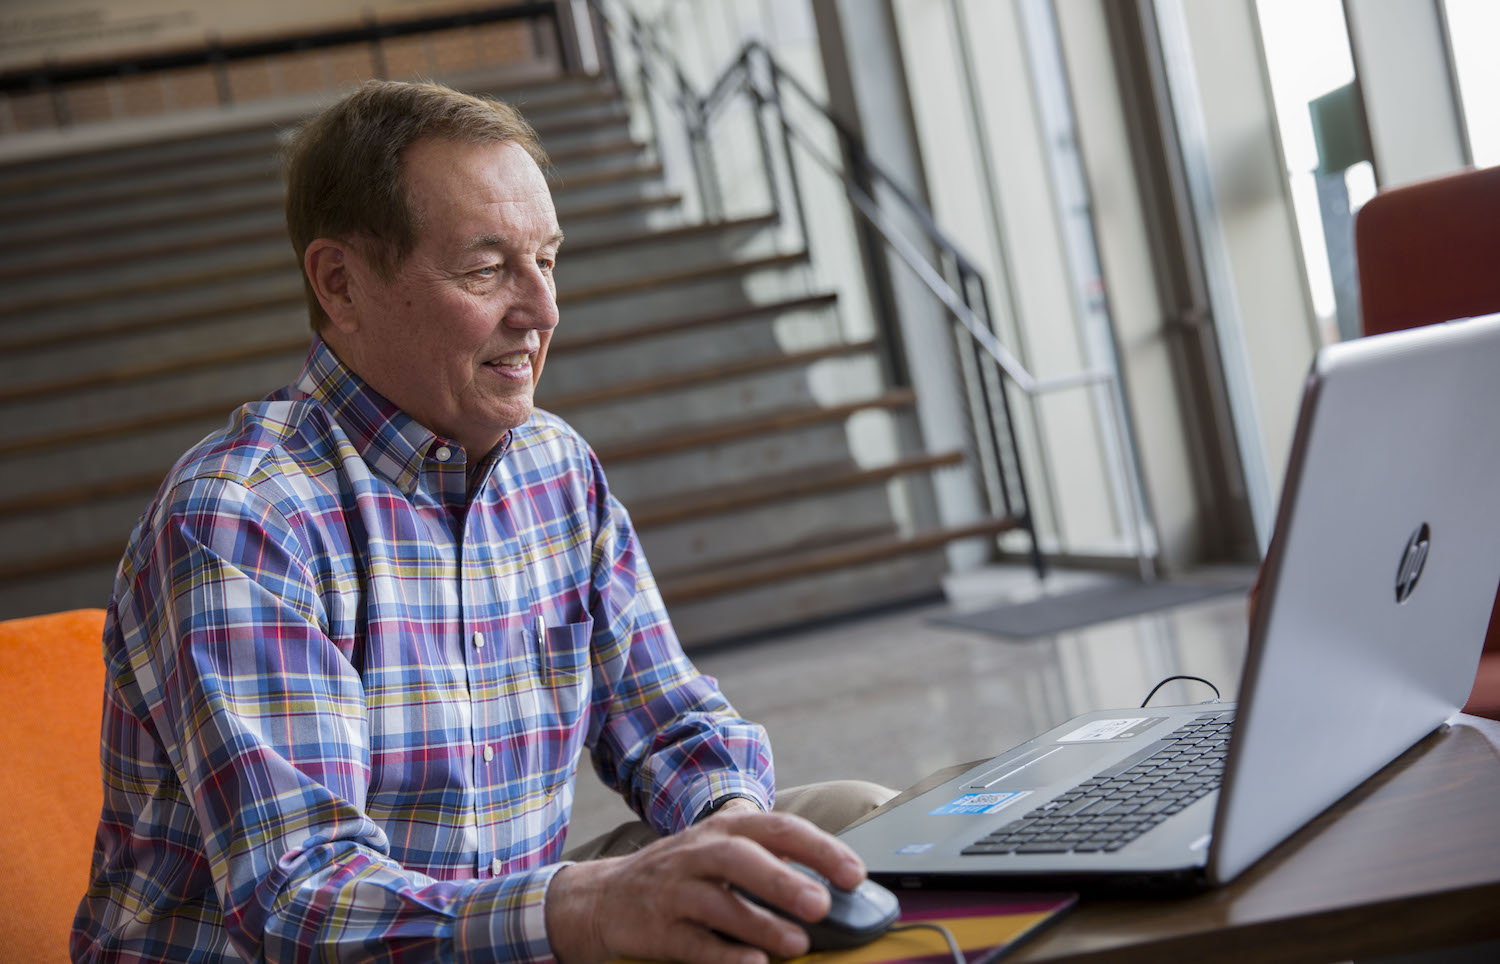 Photo of man sitting in front of a laptop.